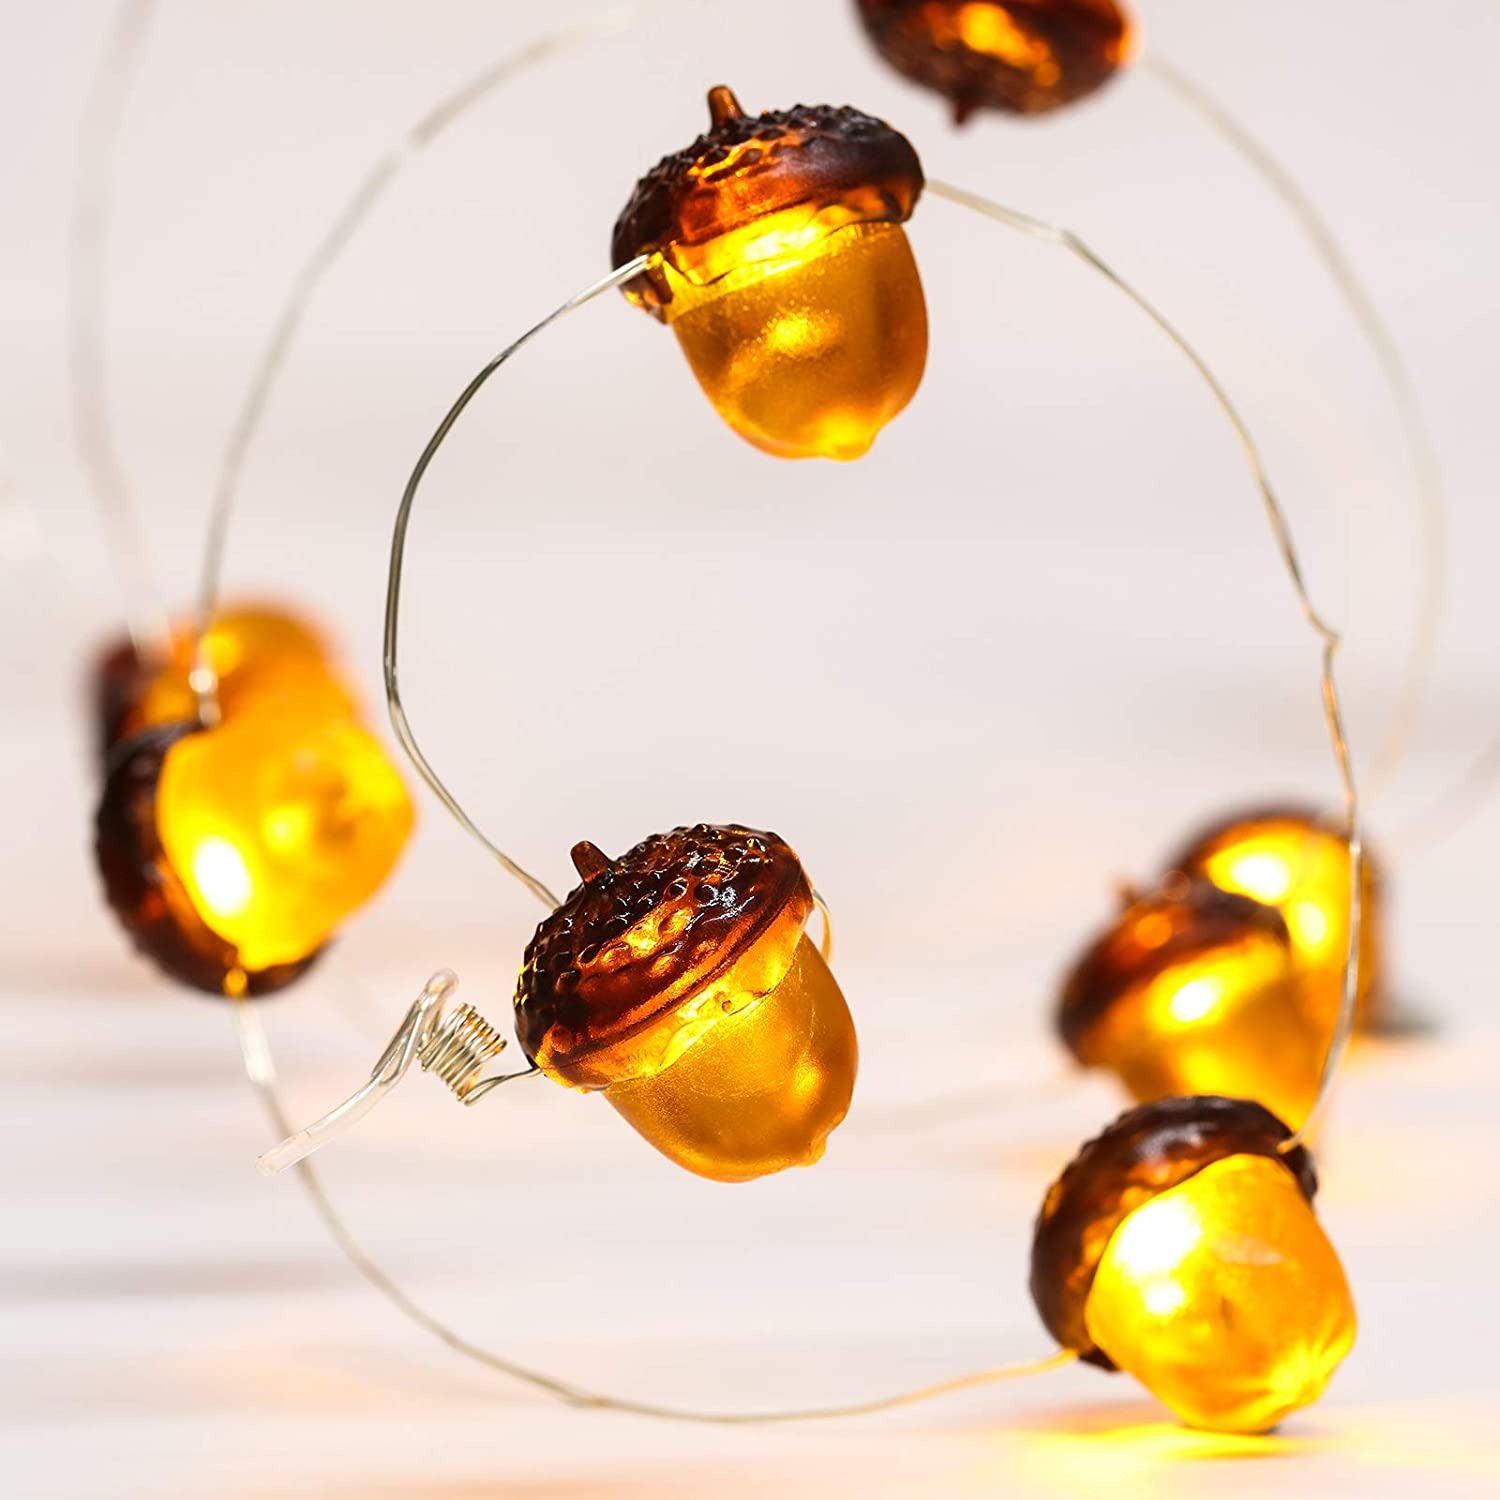 Fall Acorn String Light 3D Acorn Thanksgiving Lights 10 Feet 30 LED Waterproof Lights Battery Powered with 12 Modes, Remote Timer for Fall Thanksgiving Autumn Christmas Indoor Outdoor Decor